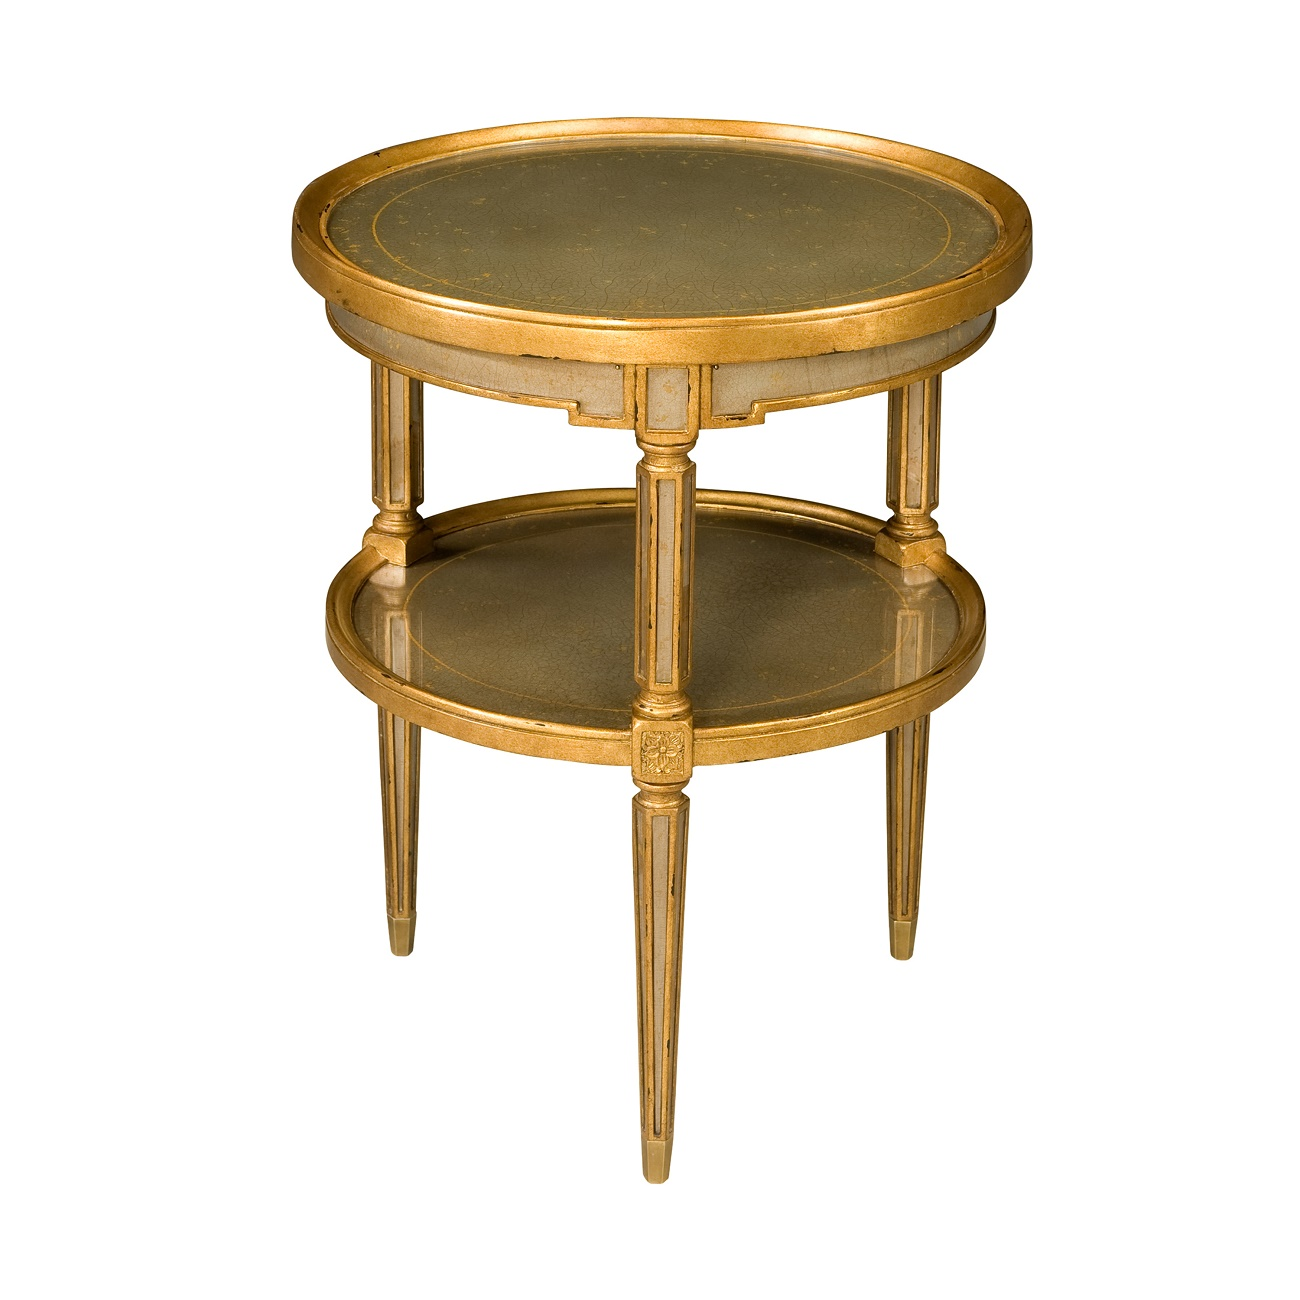 5052 008 A Jewel Of Venice Accent Table theodore alexander